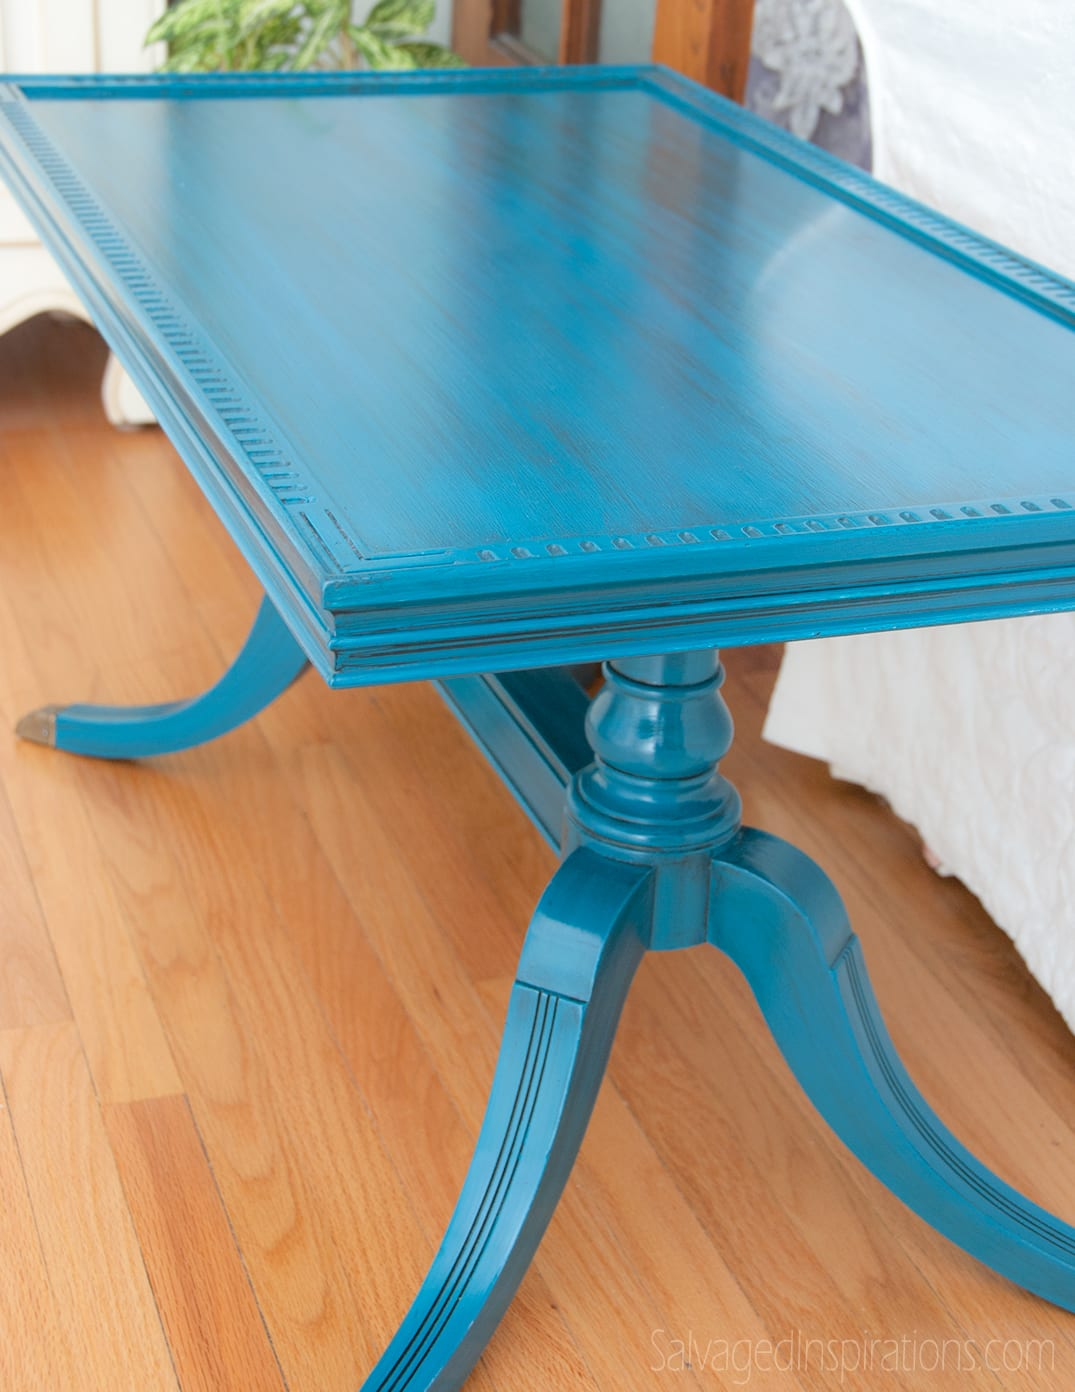 Turquoise-Glazed-Table